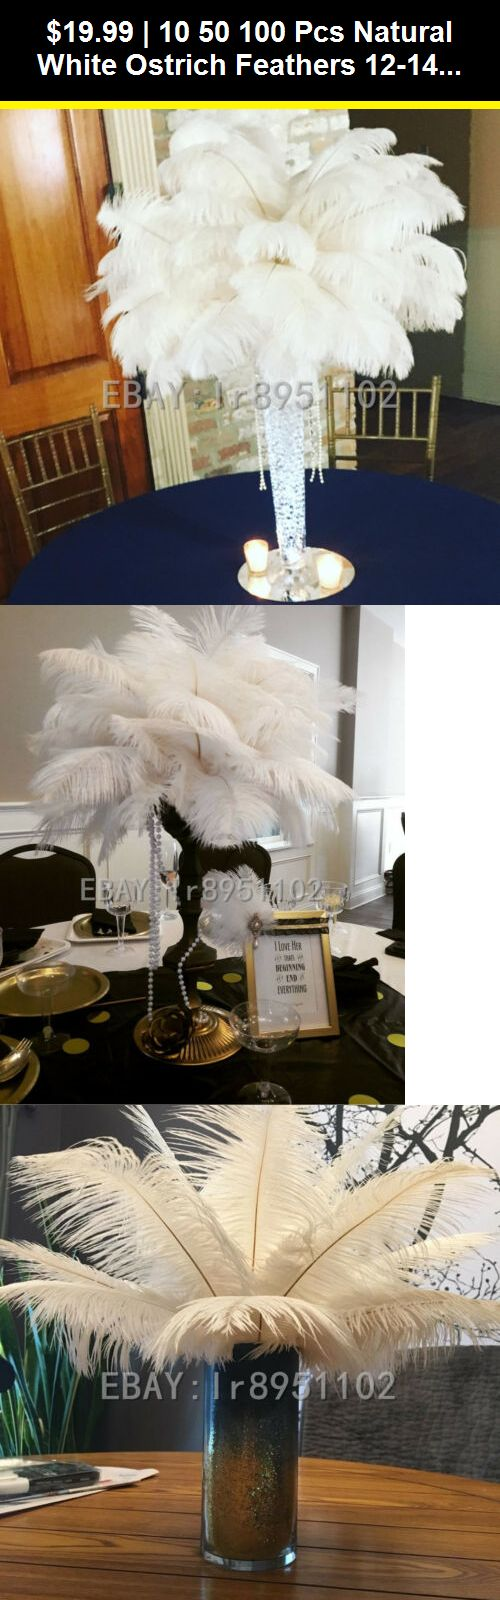 10//50//100 pcs Natural White Ostrich Feathers 12-14 inch//30-35 cm Diy Carnival